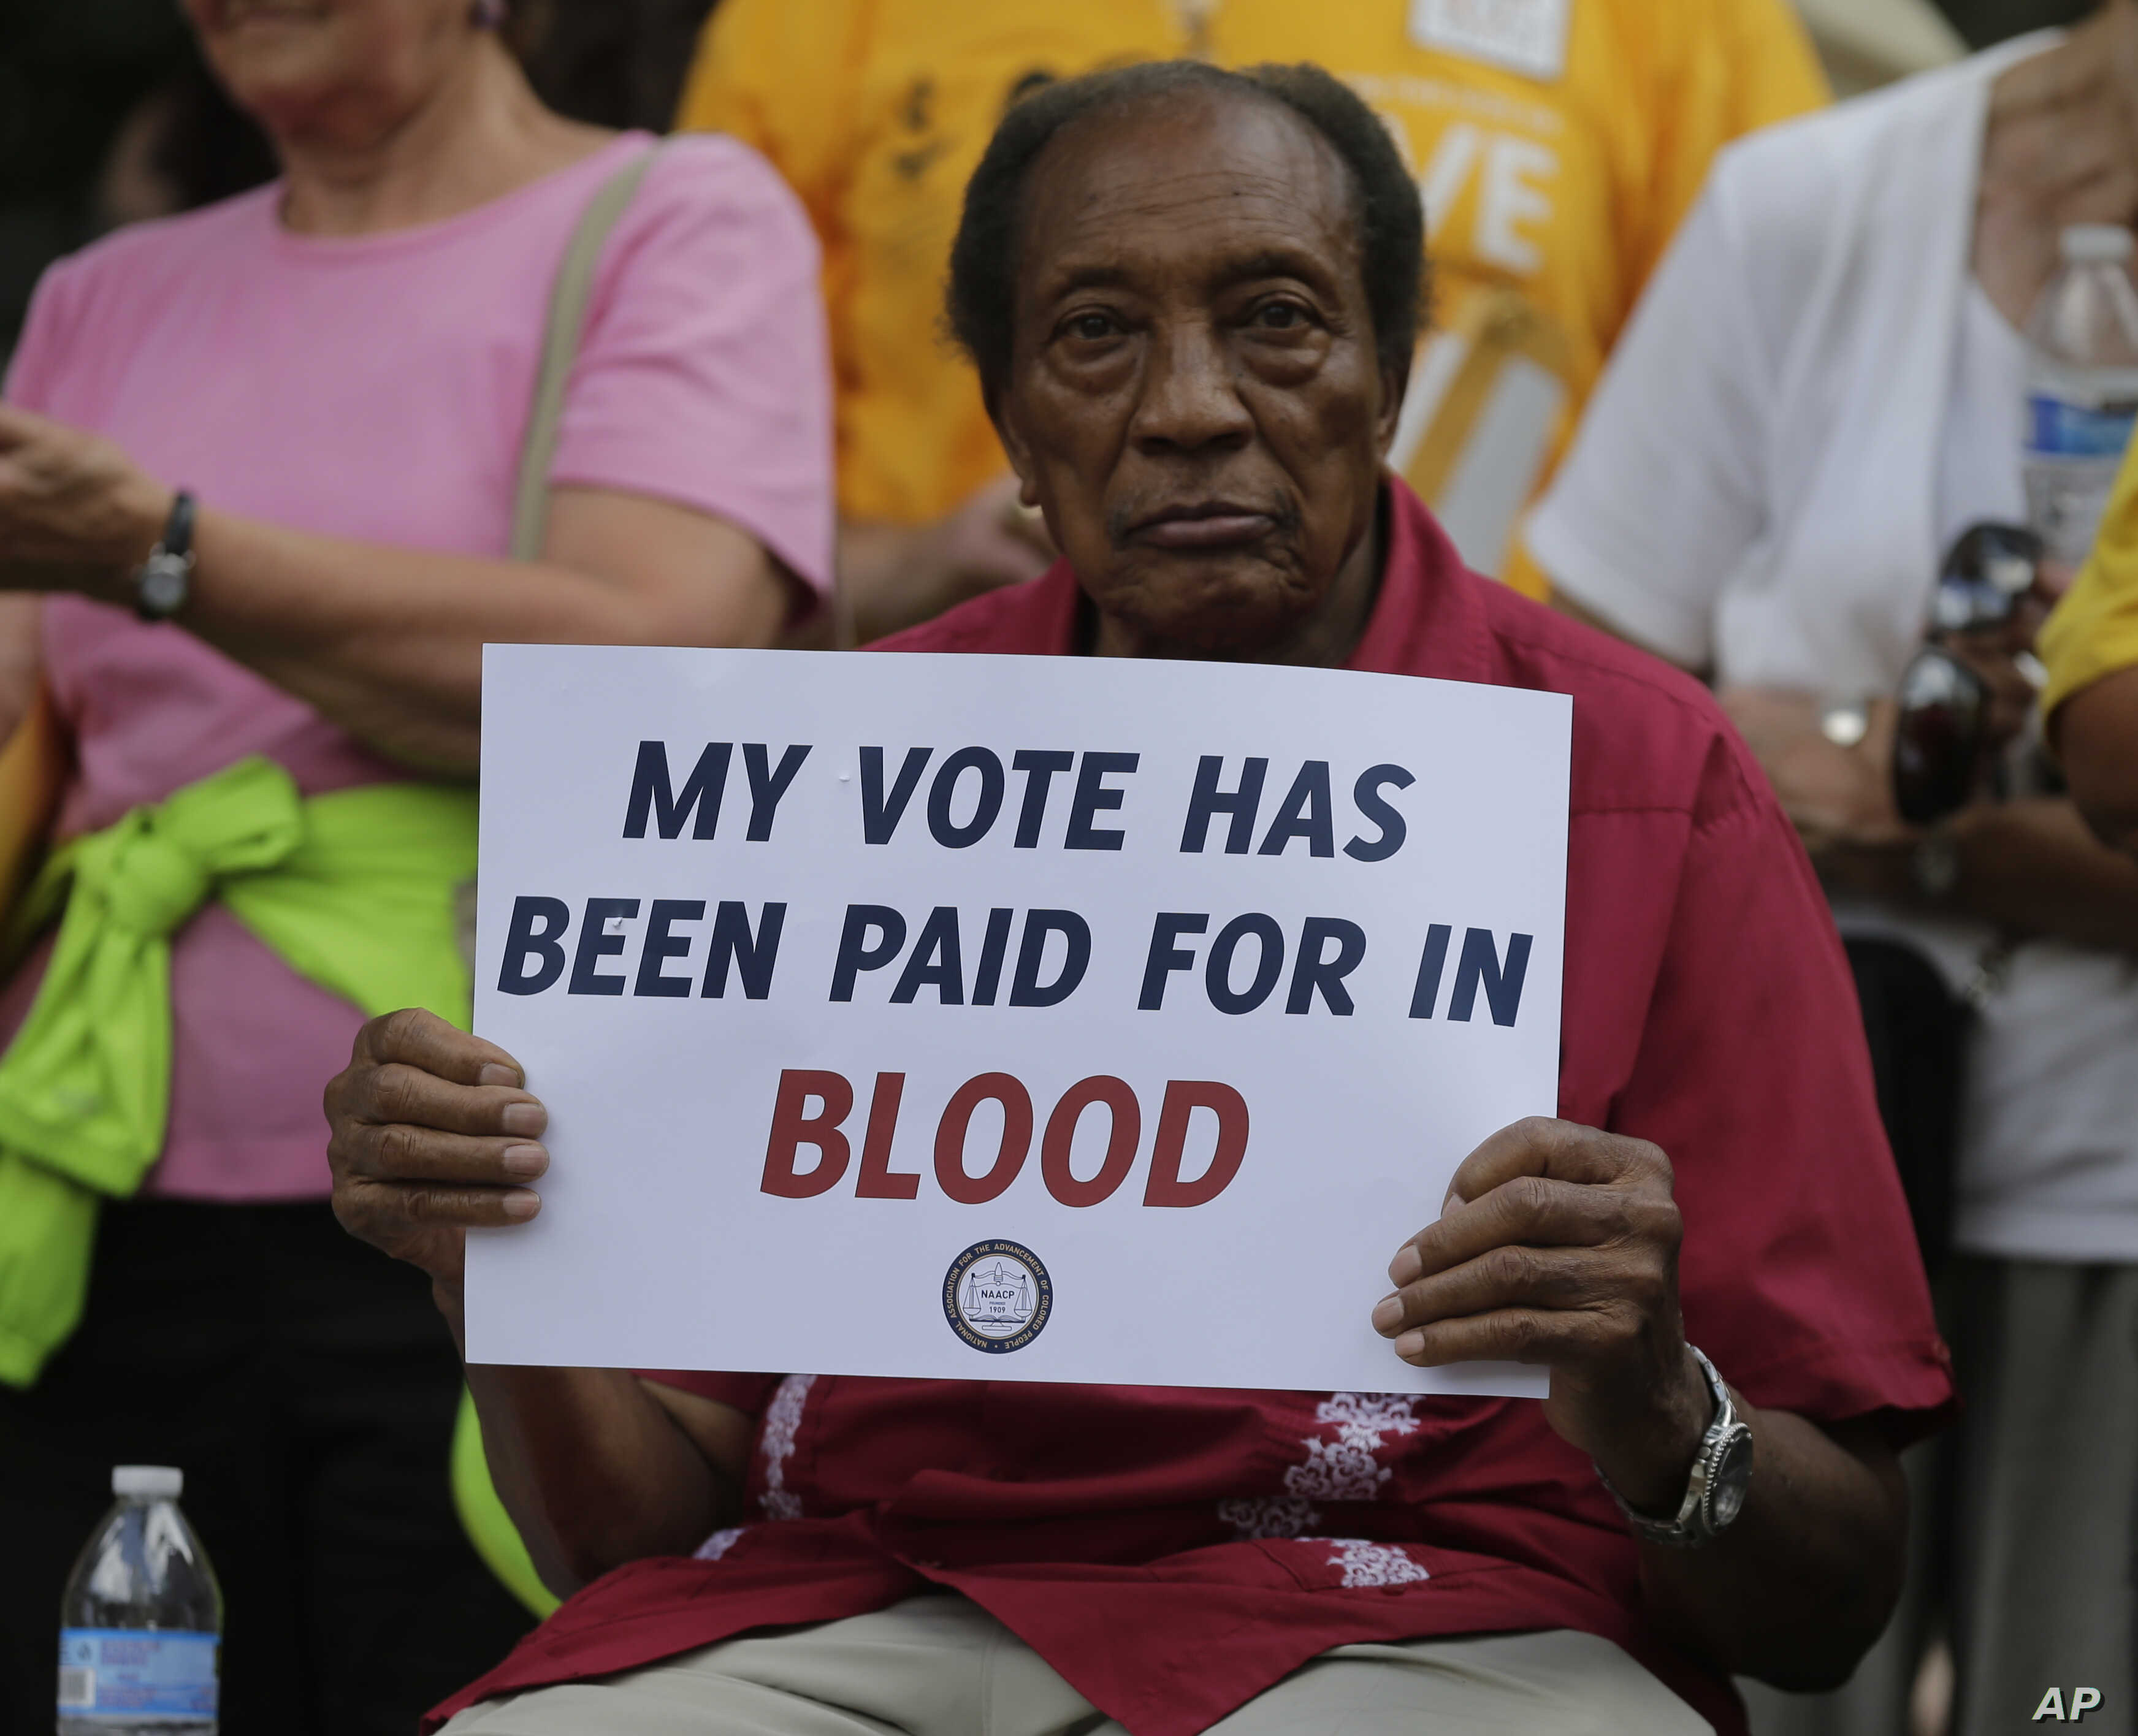 A man holds a protest sign at rally in Winston-Salem, North Carolina, after the start of a federal trial challenging the state's voting rights law, July 13, 2015.